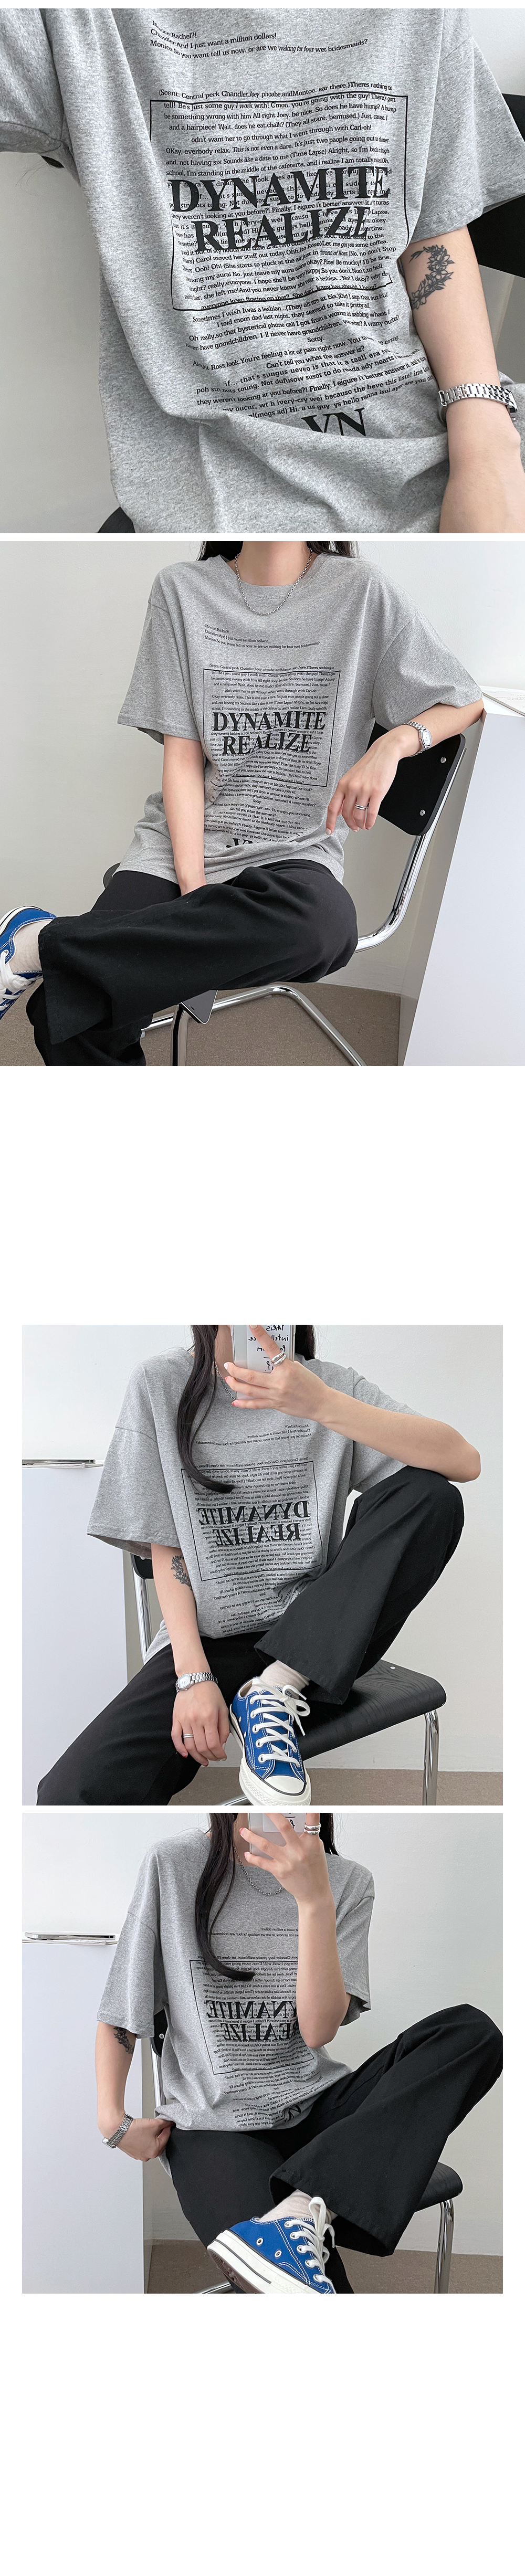 VN Lettering Boxy-fit Short Sleeve Tee